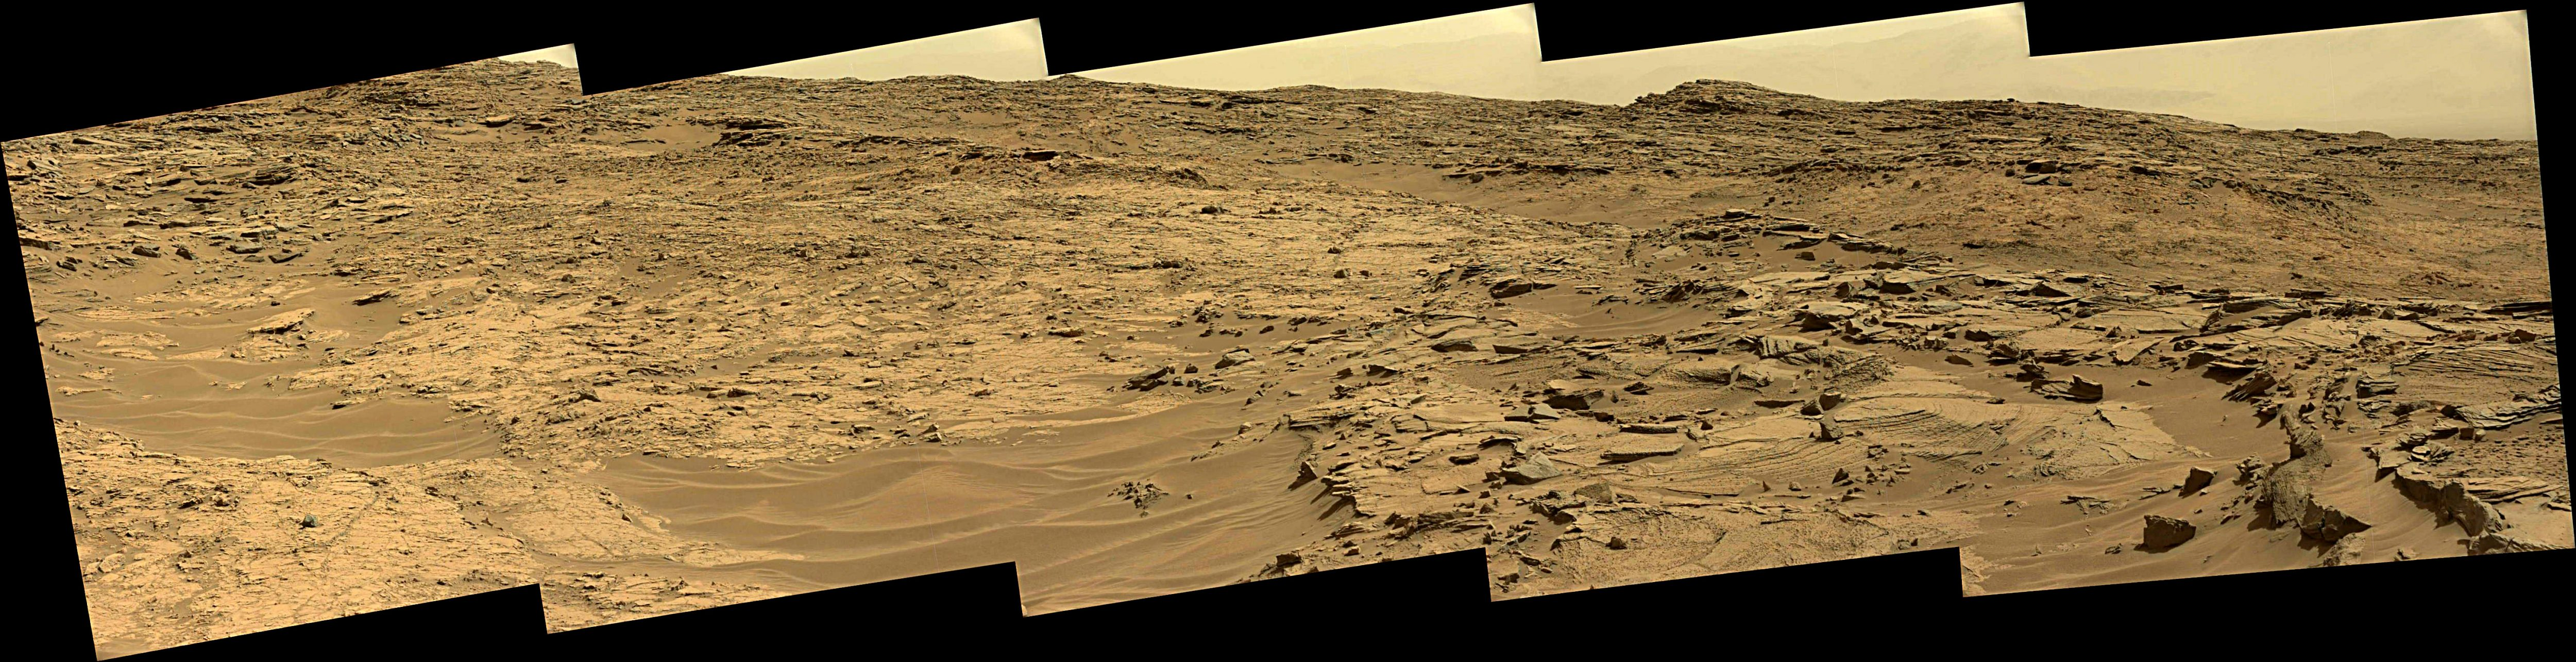 panoramic curiosity rover view 1e - sol 1352 - was life on mars